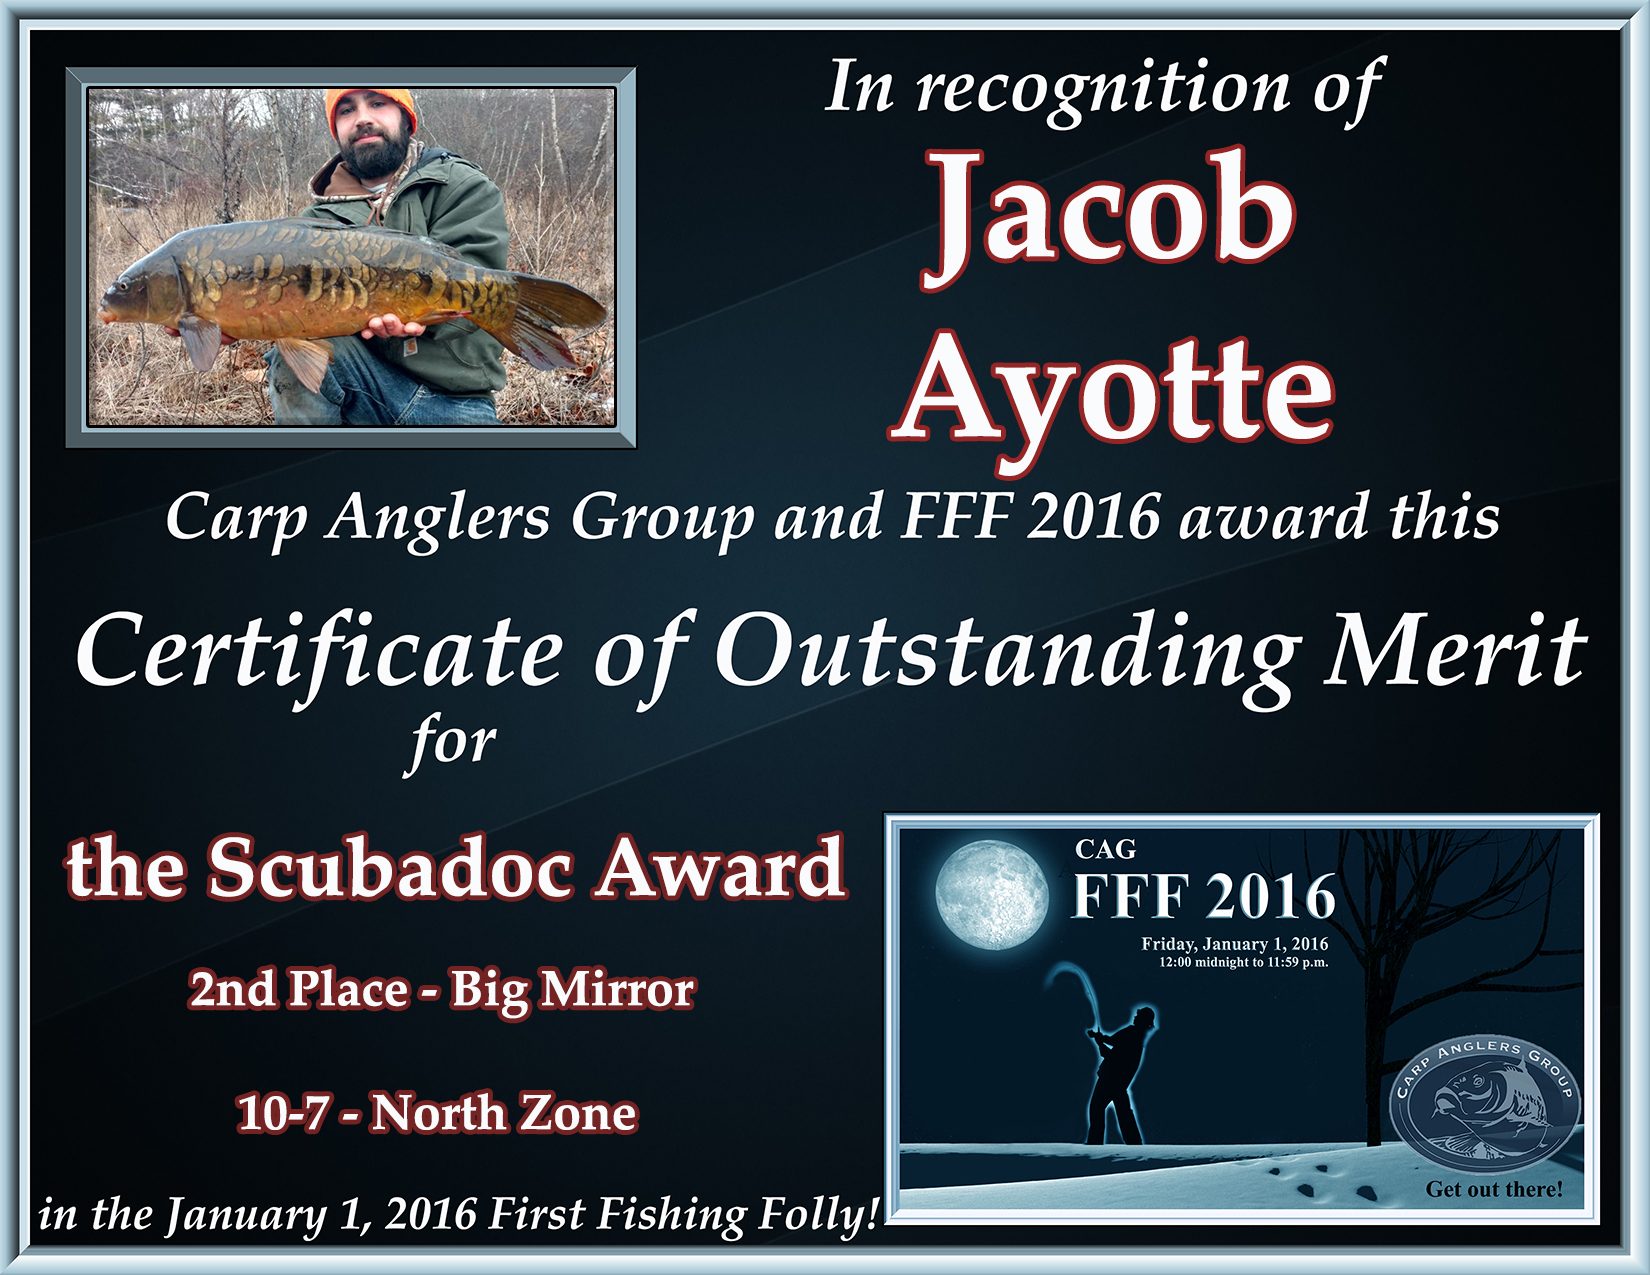 fff2016 cert mirror jacob 2nd